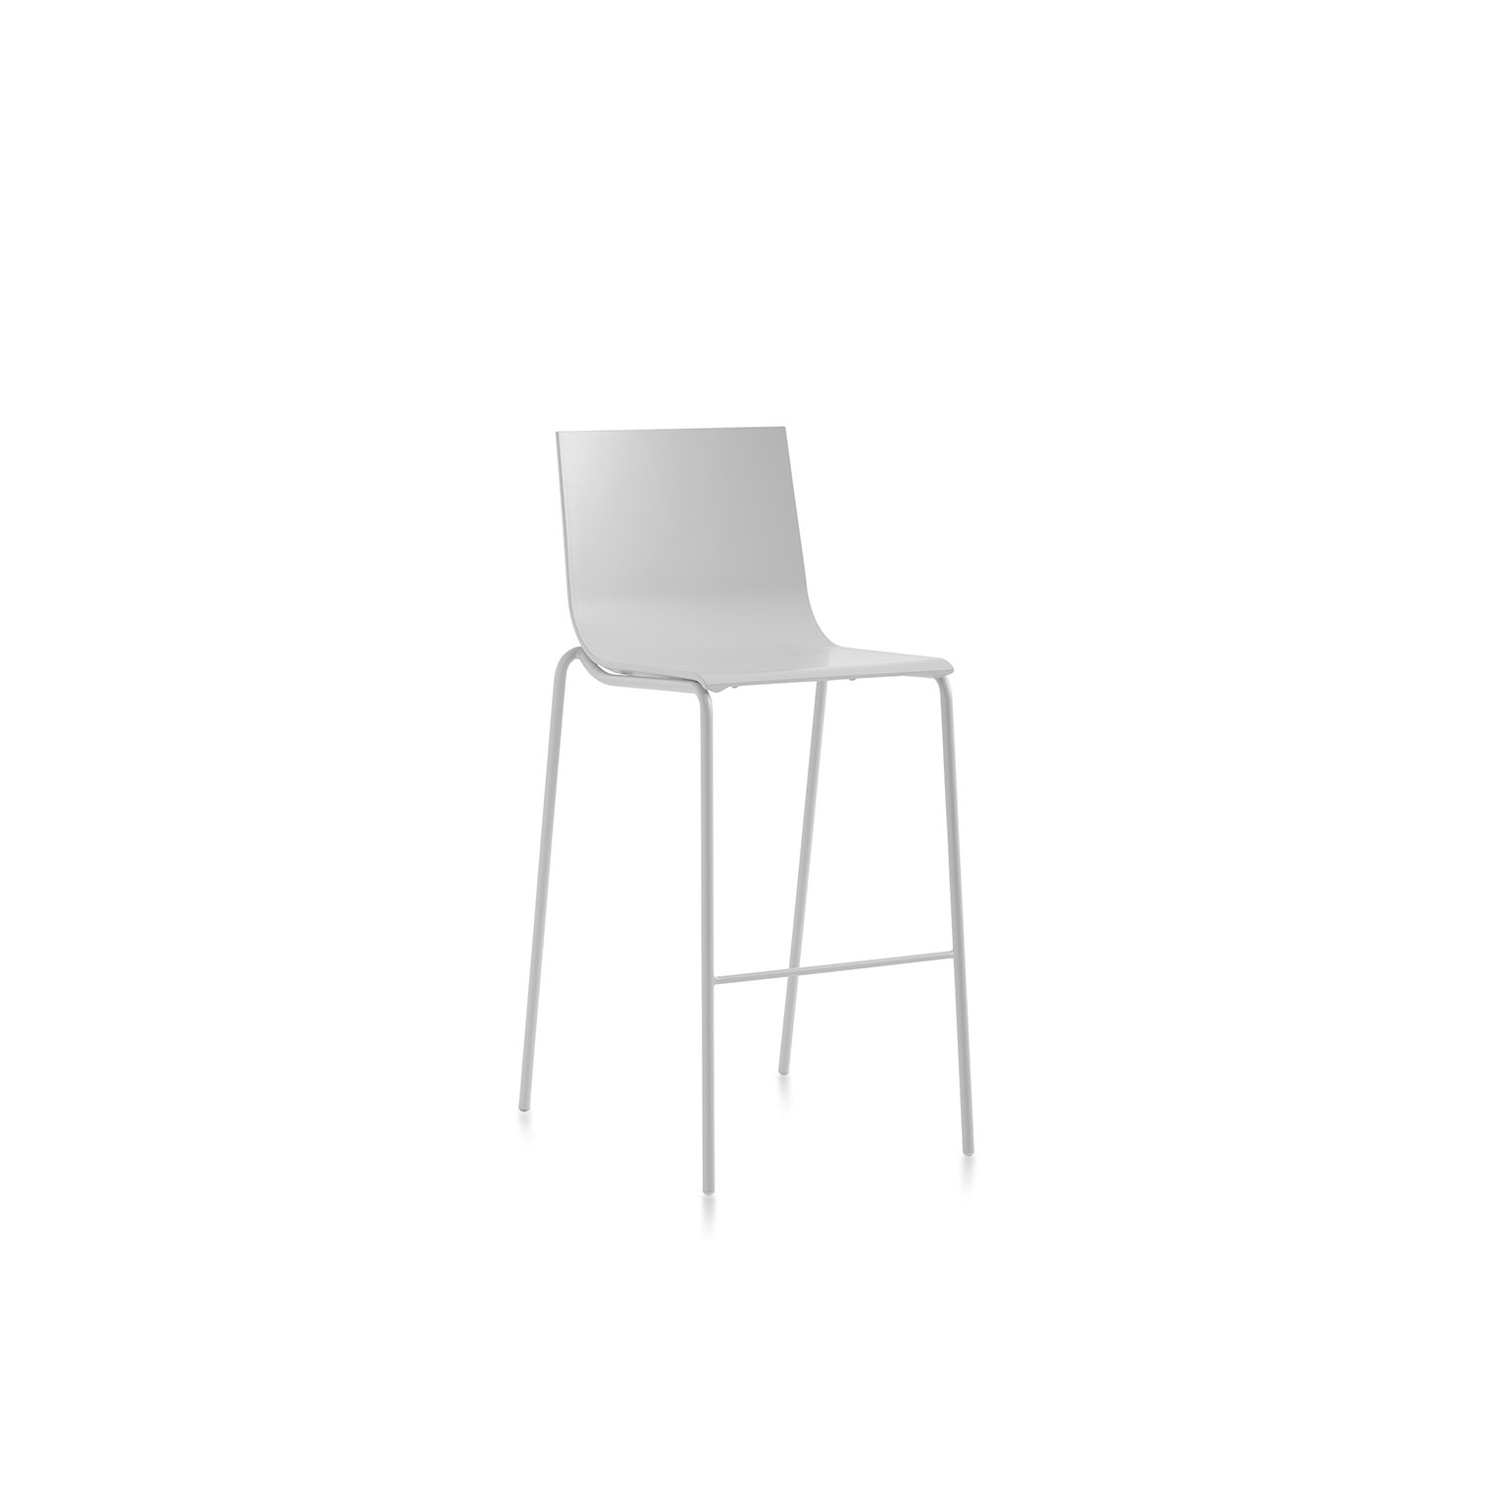 Vent Barstool - <p>Diabla presents their chameleon: the Vent outdoor barstool, an item that seems to change its appearance depending on the colour you choose. In neutral tones like white, light grey or anthracite, it comes across as a discreet, sober, elegant design. But in colours like pink, red, blue or yellow it can become that colourful, fun item that's clamouring to be noticed.</p>  | Matter of Stuff